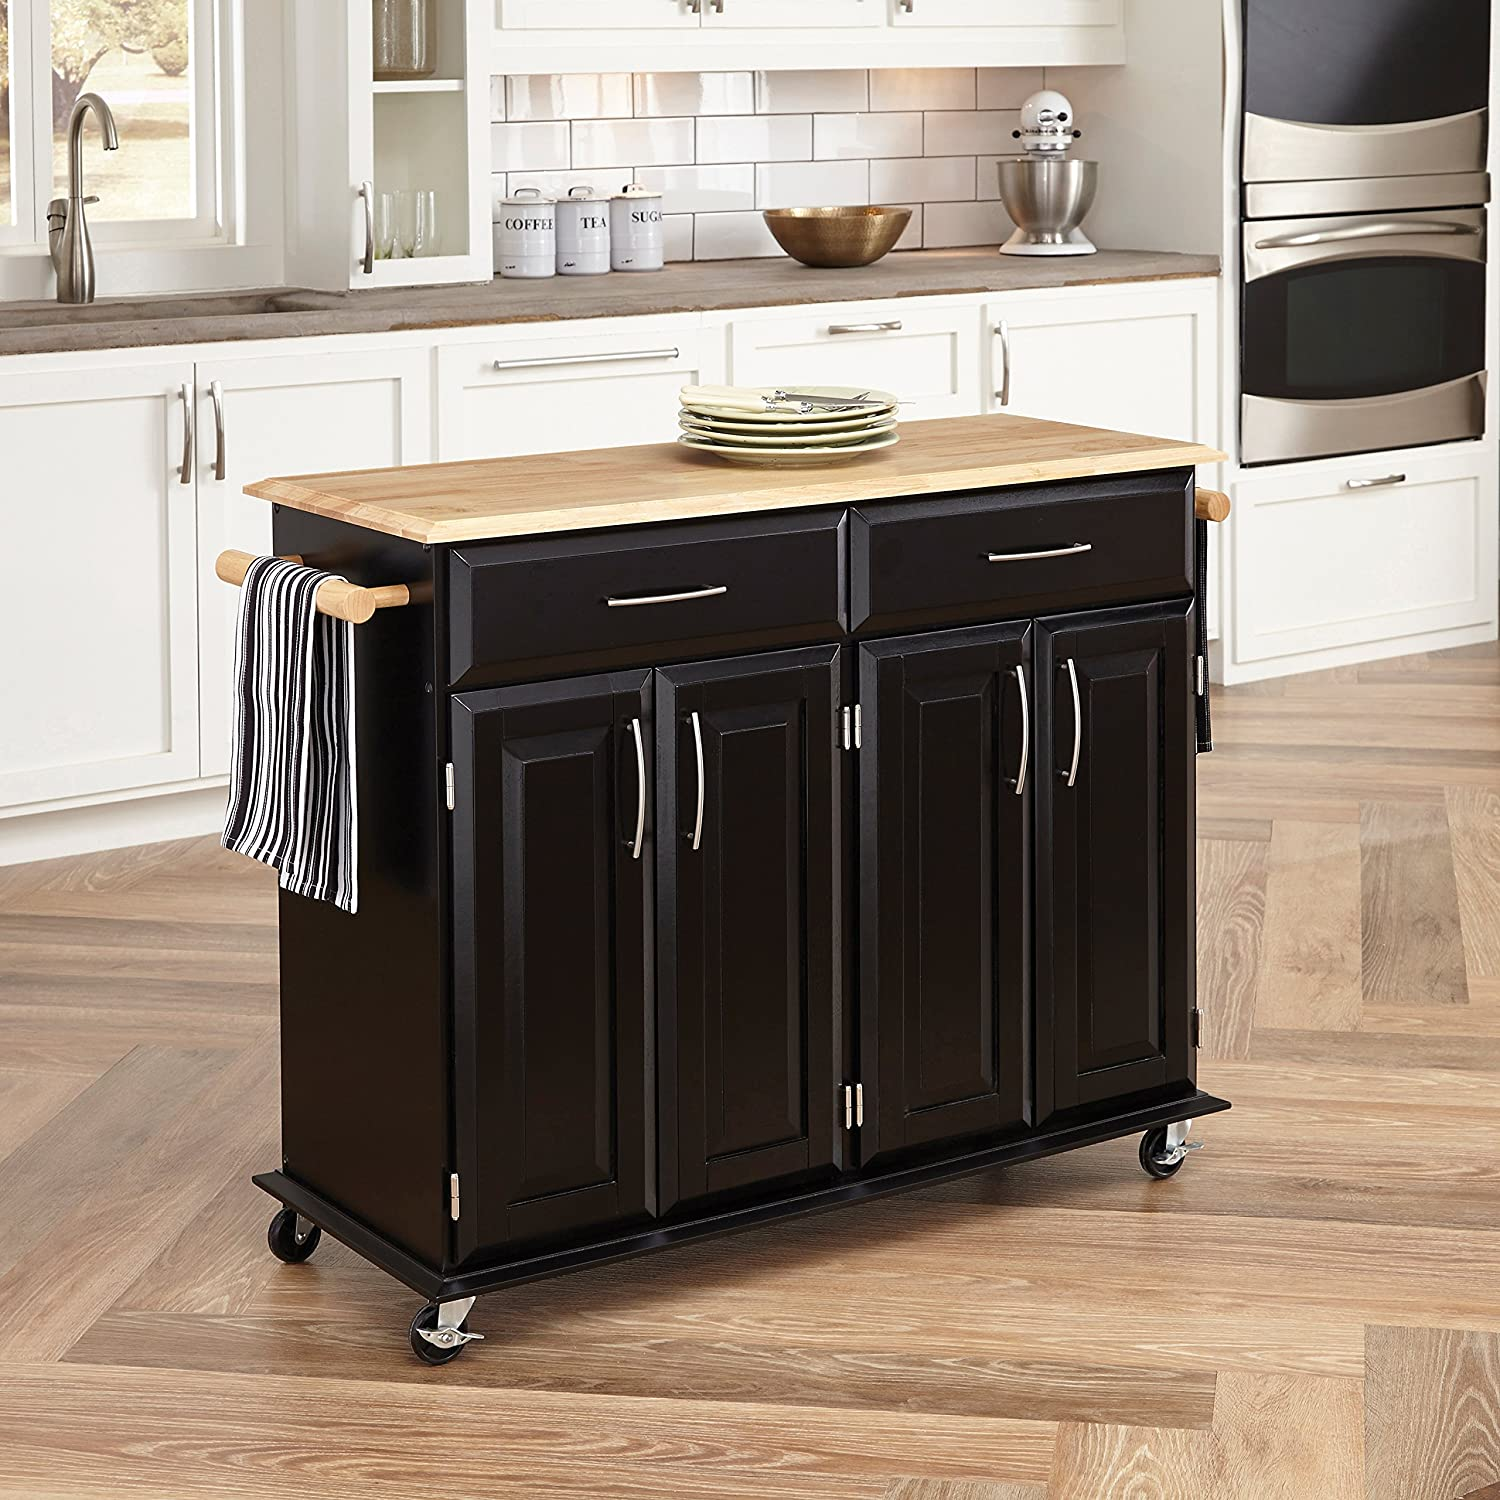 Dolly Madison Black Kitchen Cart by Home Styles, 9 9/9 in. W x 98 9/9 in.  D x 9 9/9 in. H